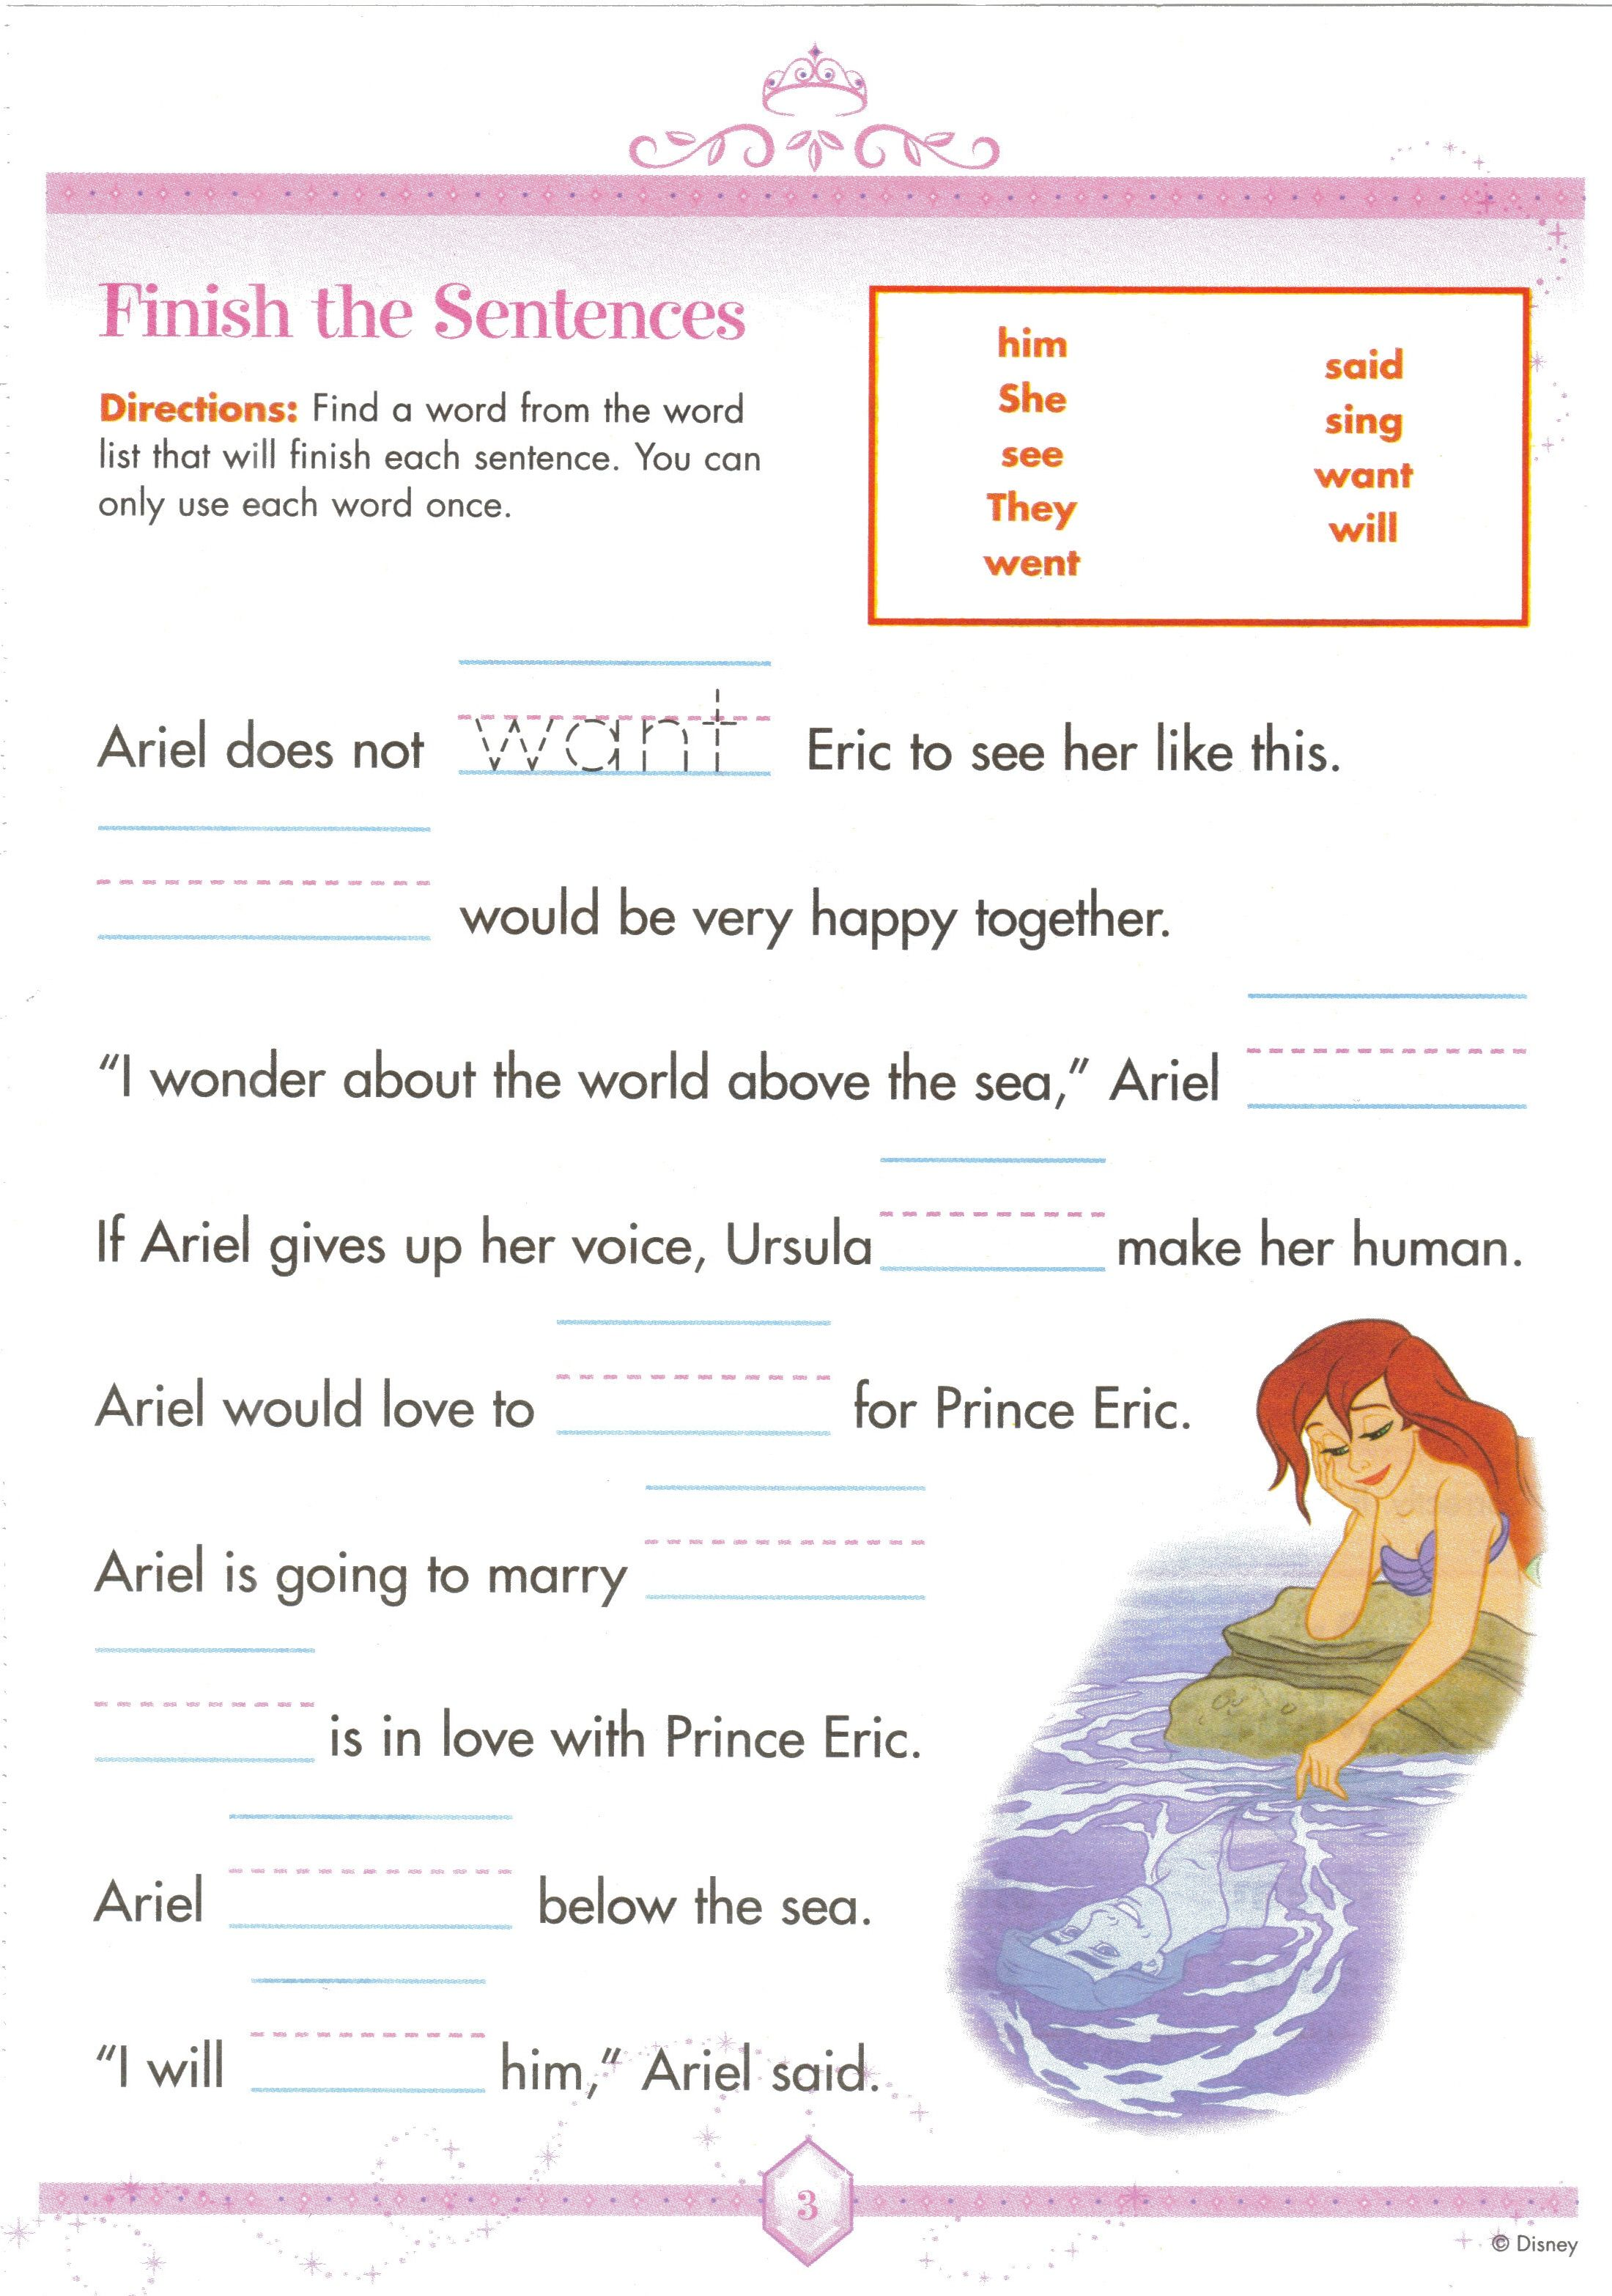 Proatmealus  Pleasant  Images About Worksheets On Pinterest  Fun Facts For Kids  With Great  Images About Worksheets On Pinterest  Fun Facts For Kids Earth Day Worksheets And Jungles With Alluring Writing Letters Of The Alphabet Worksheets Also Skeletal System Worksheets For Kids In Addition More Than And Less Than Worksheets For Kindergarten And Free Printable English Worksheets For Grade  As Well As Free Printable Maths Worksheets For Grade  Additionally Celts Worksheets From Pinterestcom With Proatmealus  Great  Images About Worksheets On Pinterest  Fun Facts For Kids  With Alluring  Images About Worksheets On Pinterest  Fun Facts For Kids Earth Day Worksheets And Jungles And Pleasant Writing Letters Of The Alphabet Worksheets Also Skeletal System Worksheets For Kids In Addition More Than And Less Than Worksheets For Kindergarten From Pinterestcom